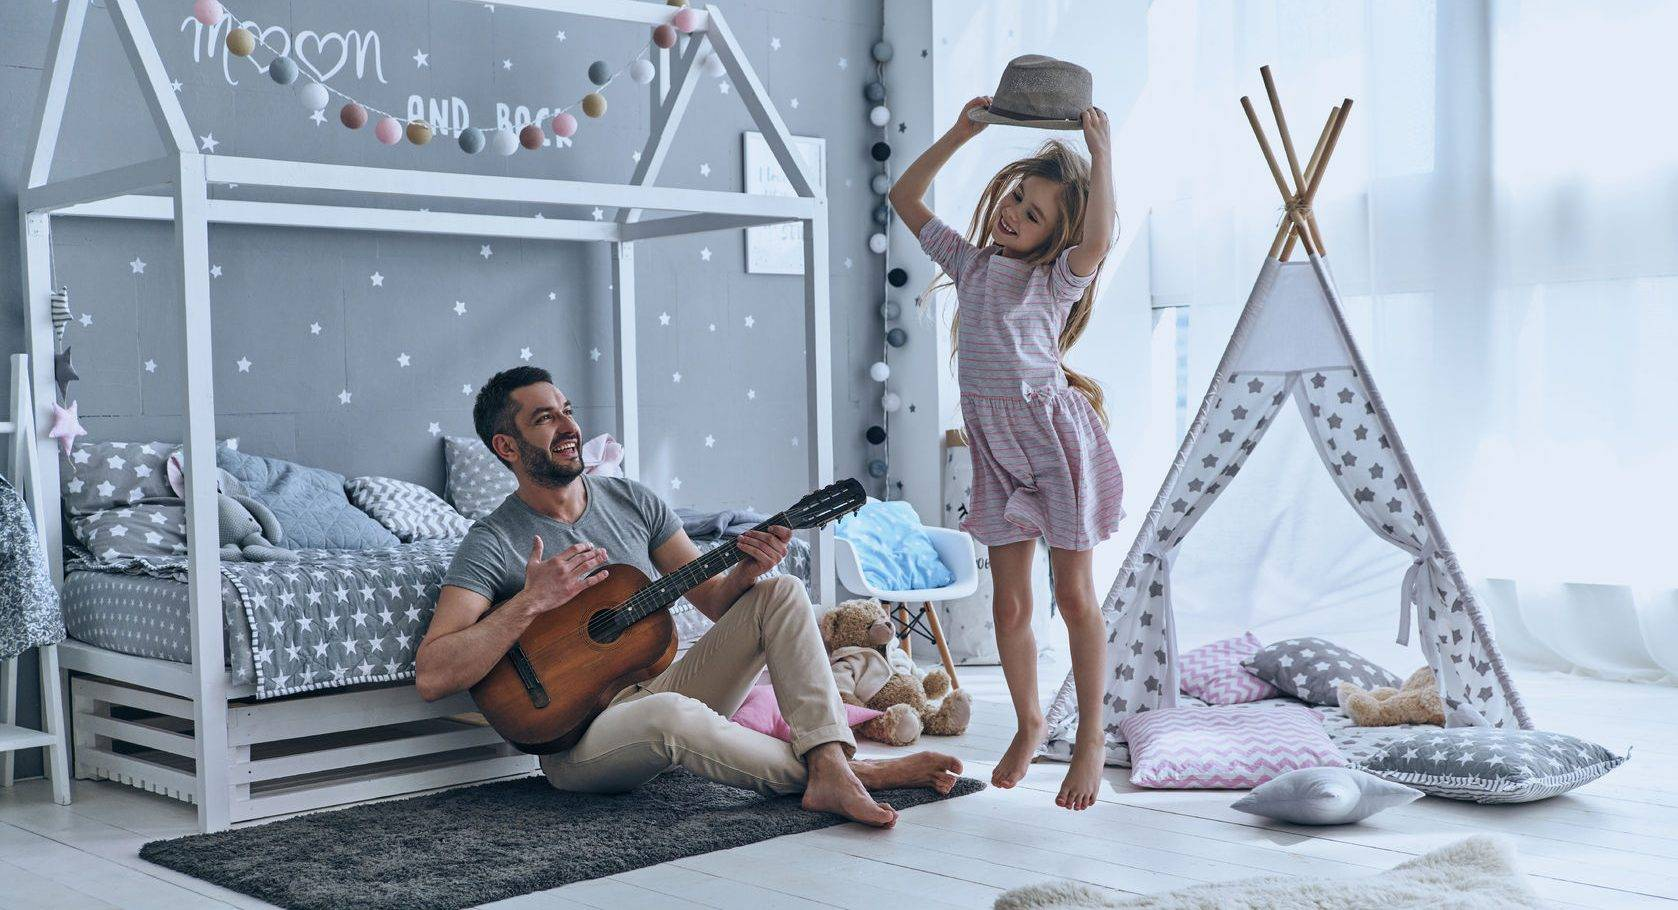 Young father plays guitar for his little daughter while she is jumping in bedroom, displaying her unique identity.